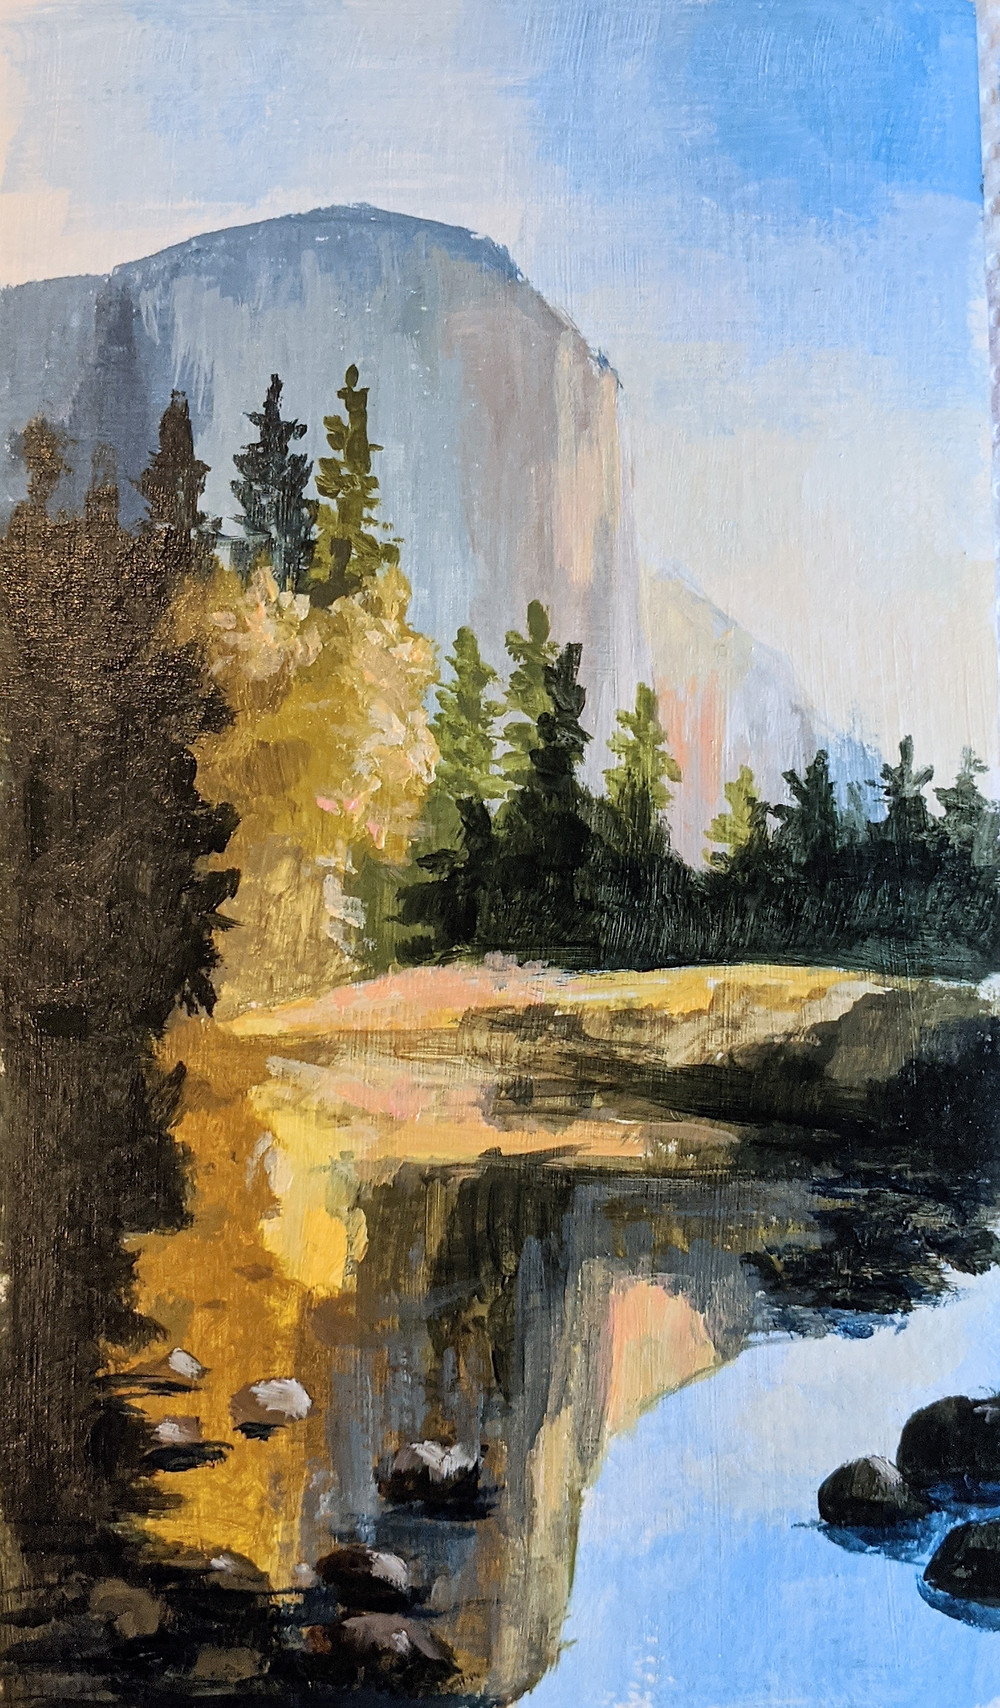 Mountain, reflection, painting, daily painting practice, improve your painting, get better at painting, painting in acrylics